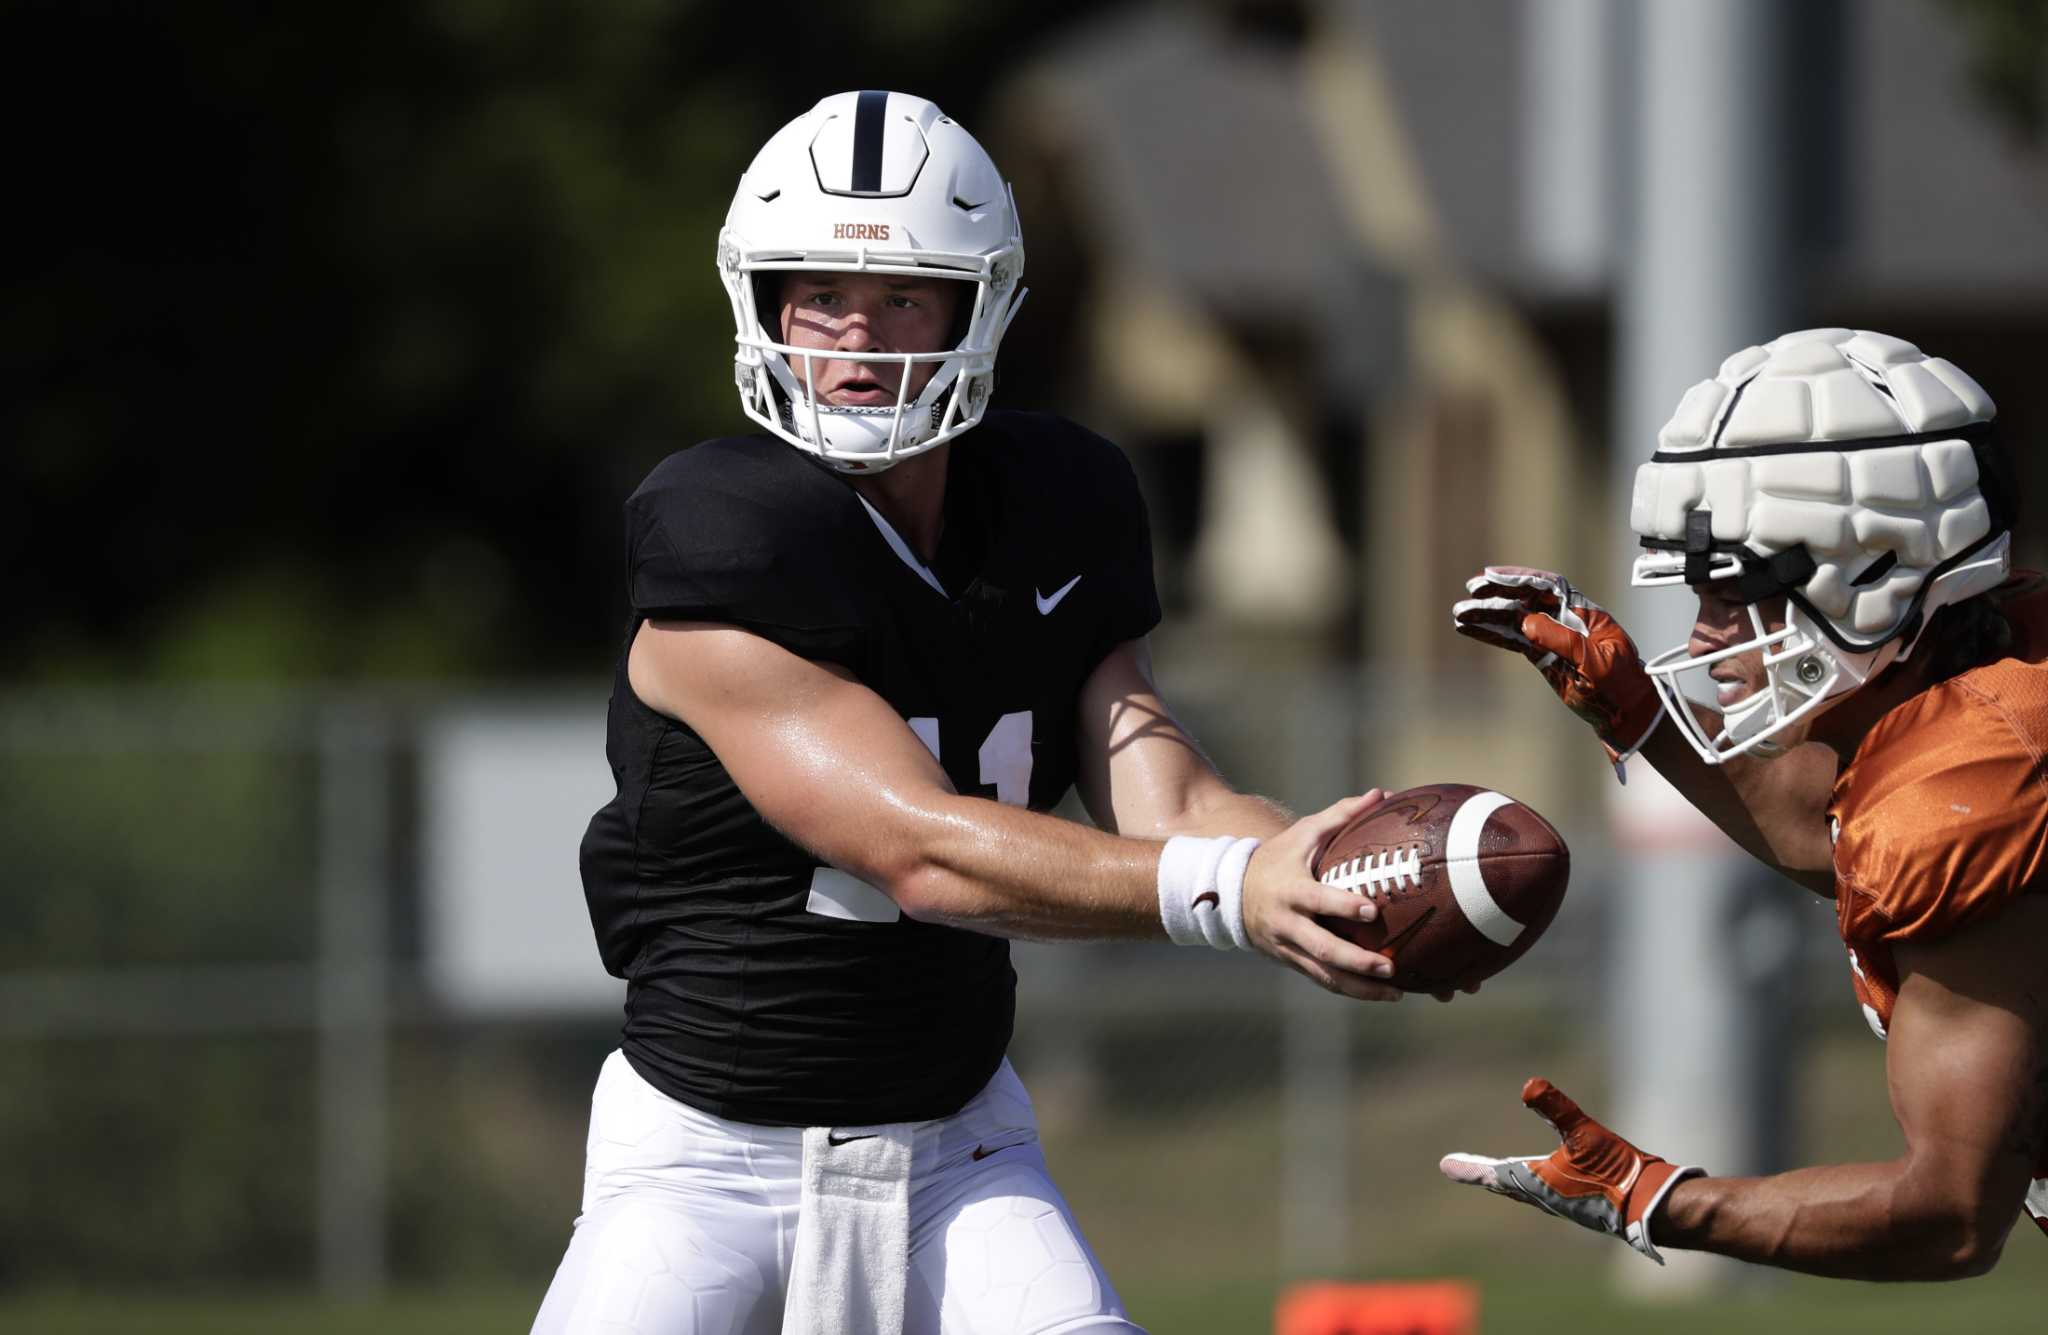 Longhorns extra points: Offense wins the scrimmage